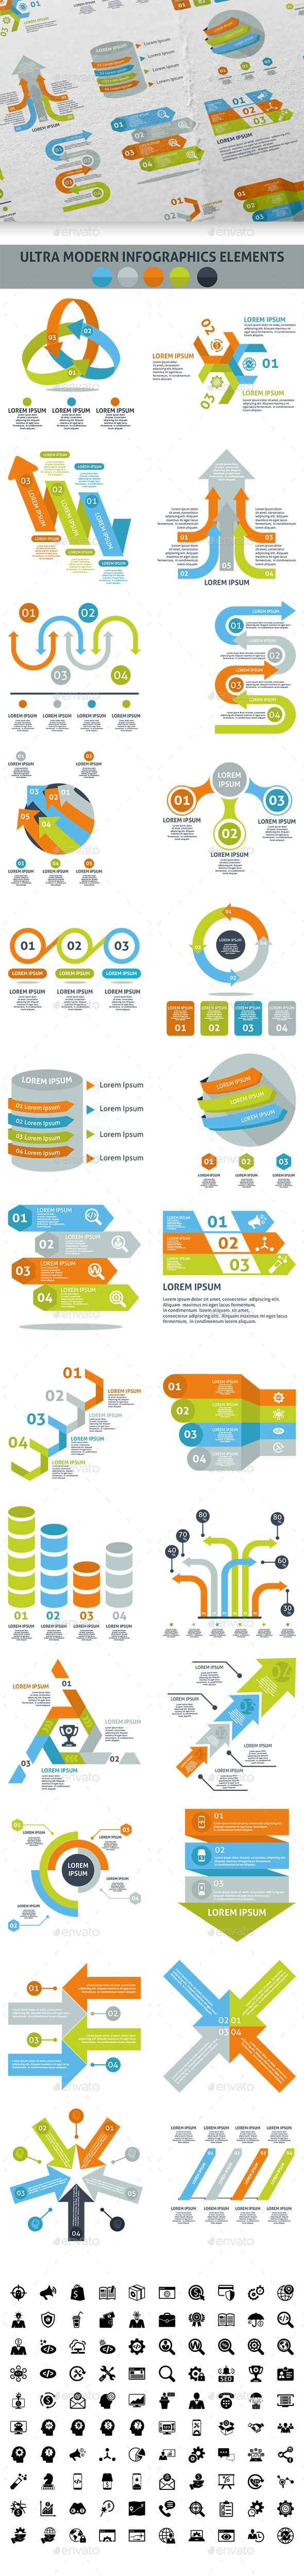 Ultra Modern Infographic Elements Template PSD, Vector EPS, AI Illustrator